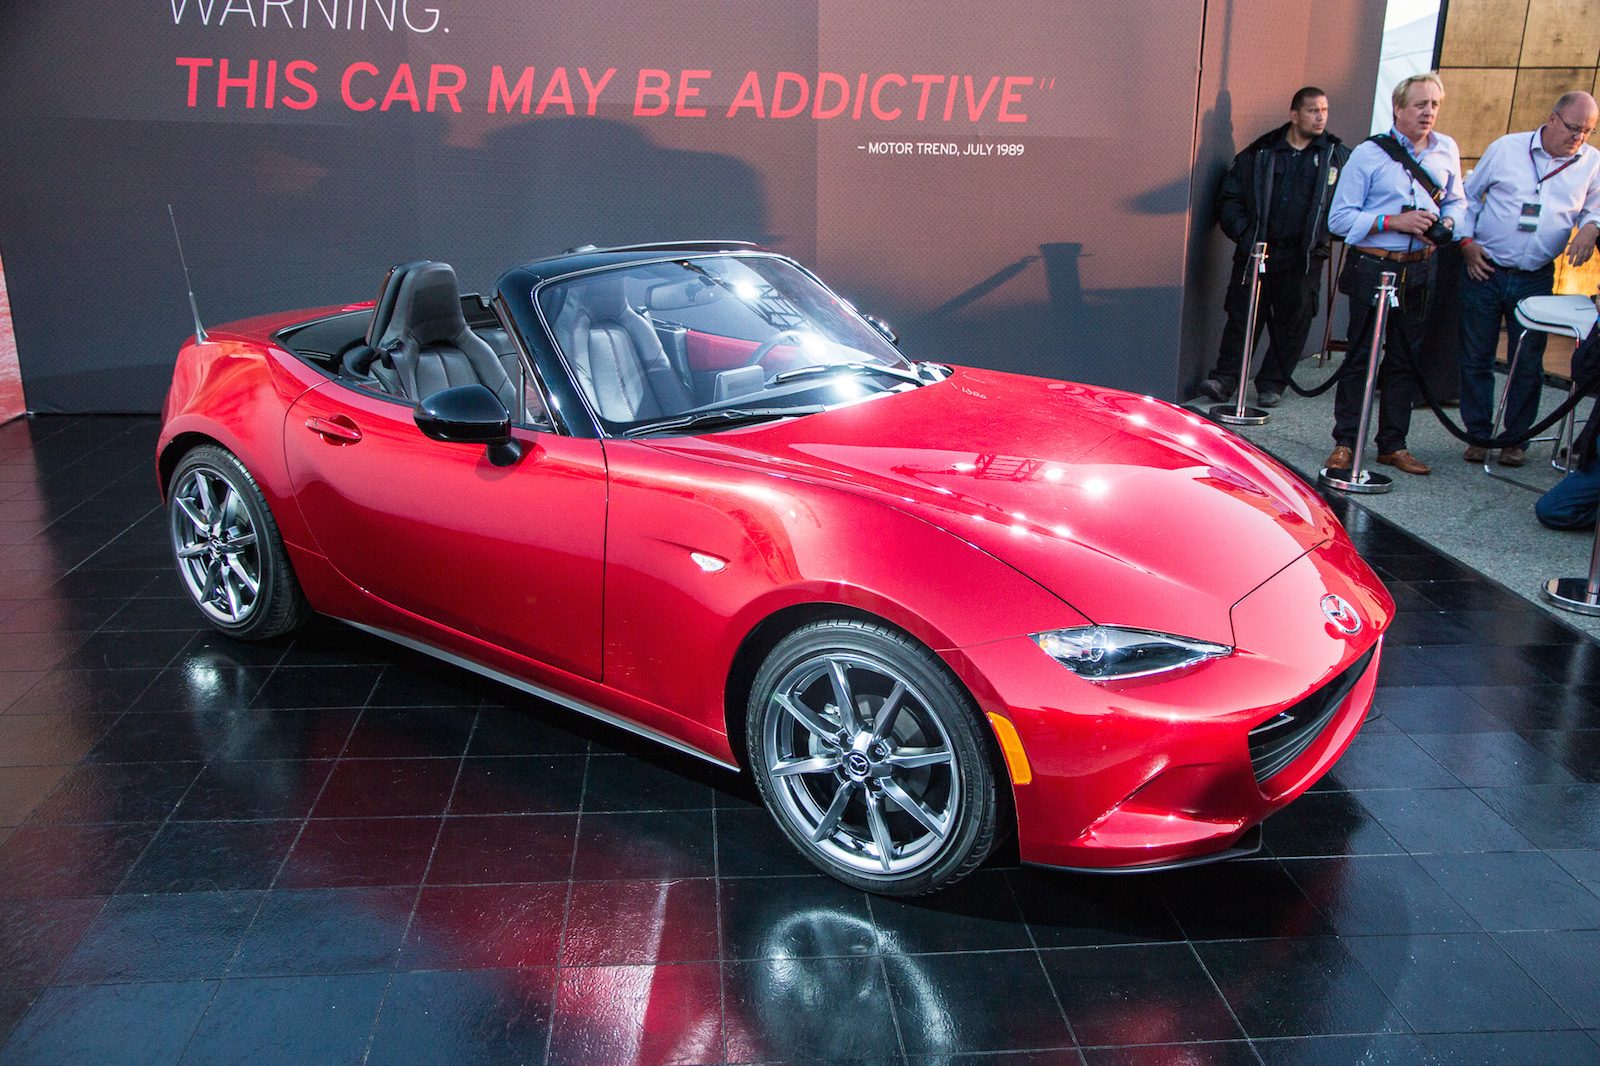 2016 Mazda MX-5 To Get 2.0-Liter Engine In U.S, 1.5-Liter Elsewhere